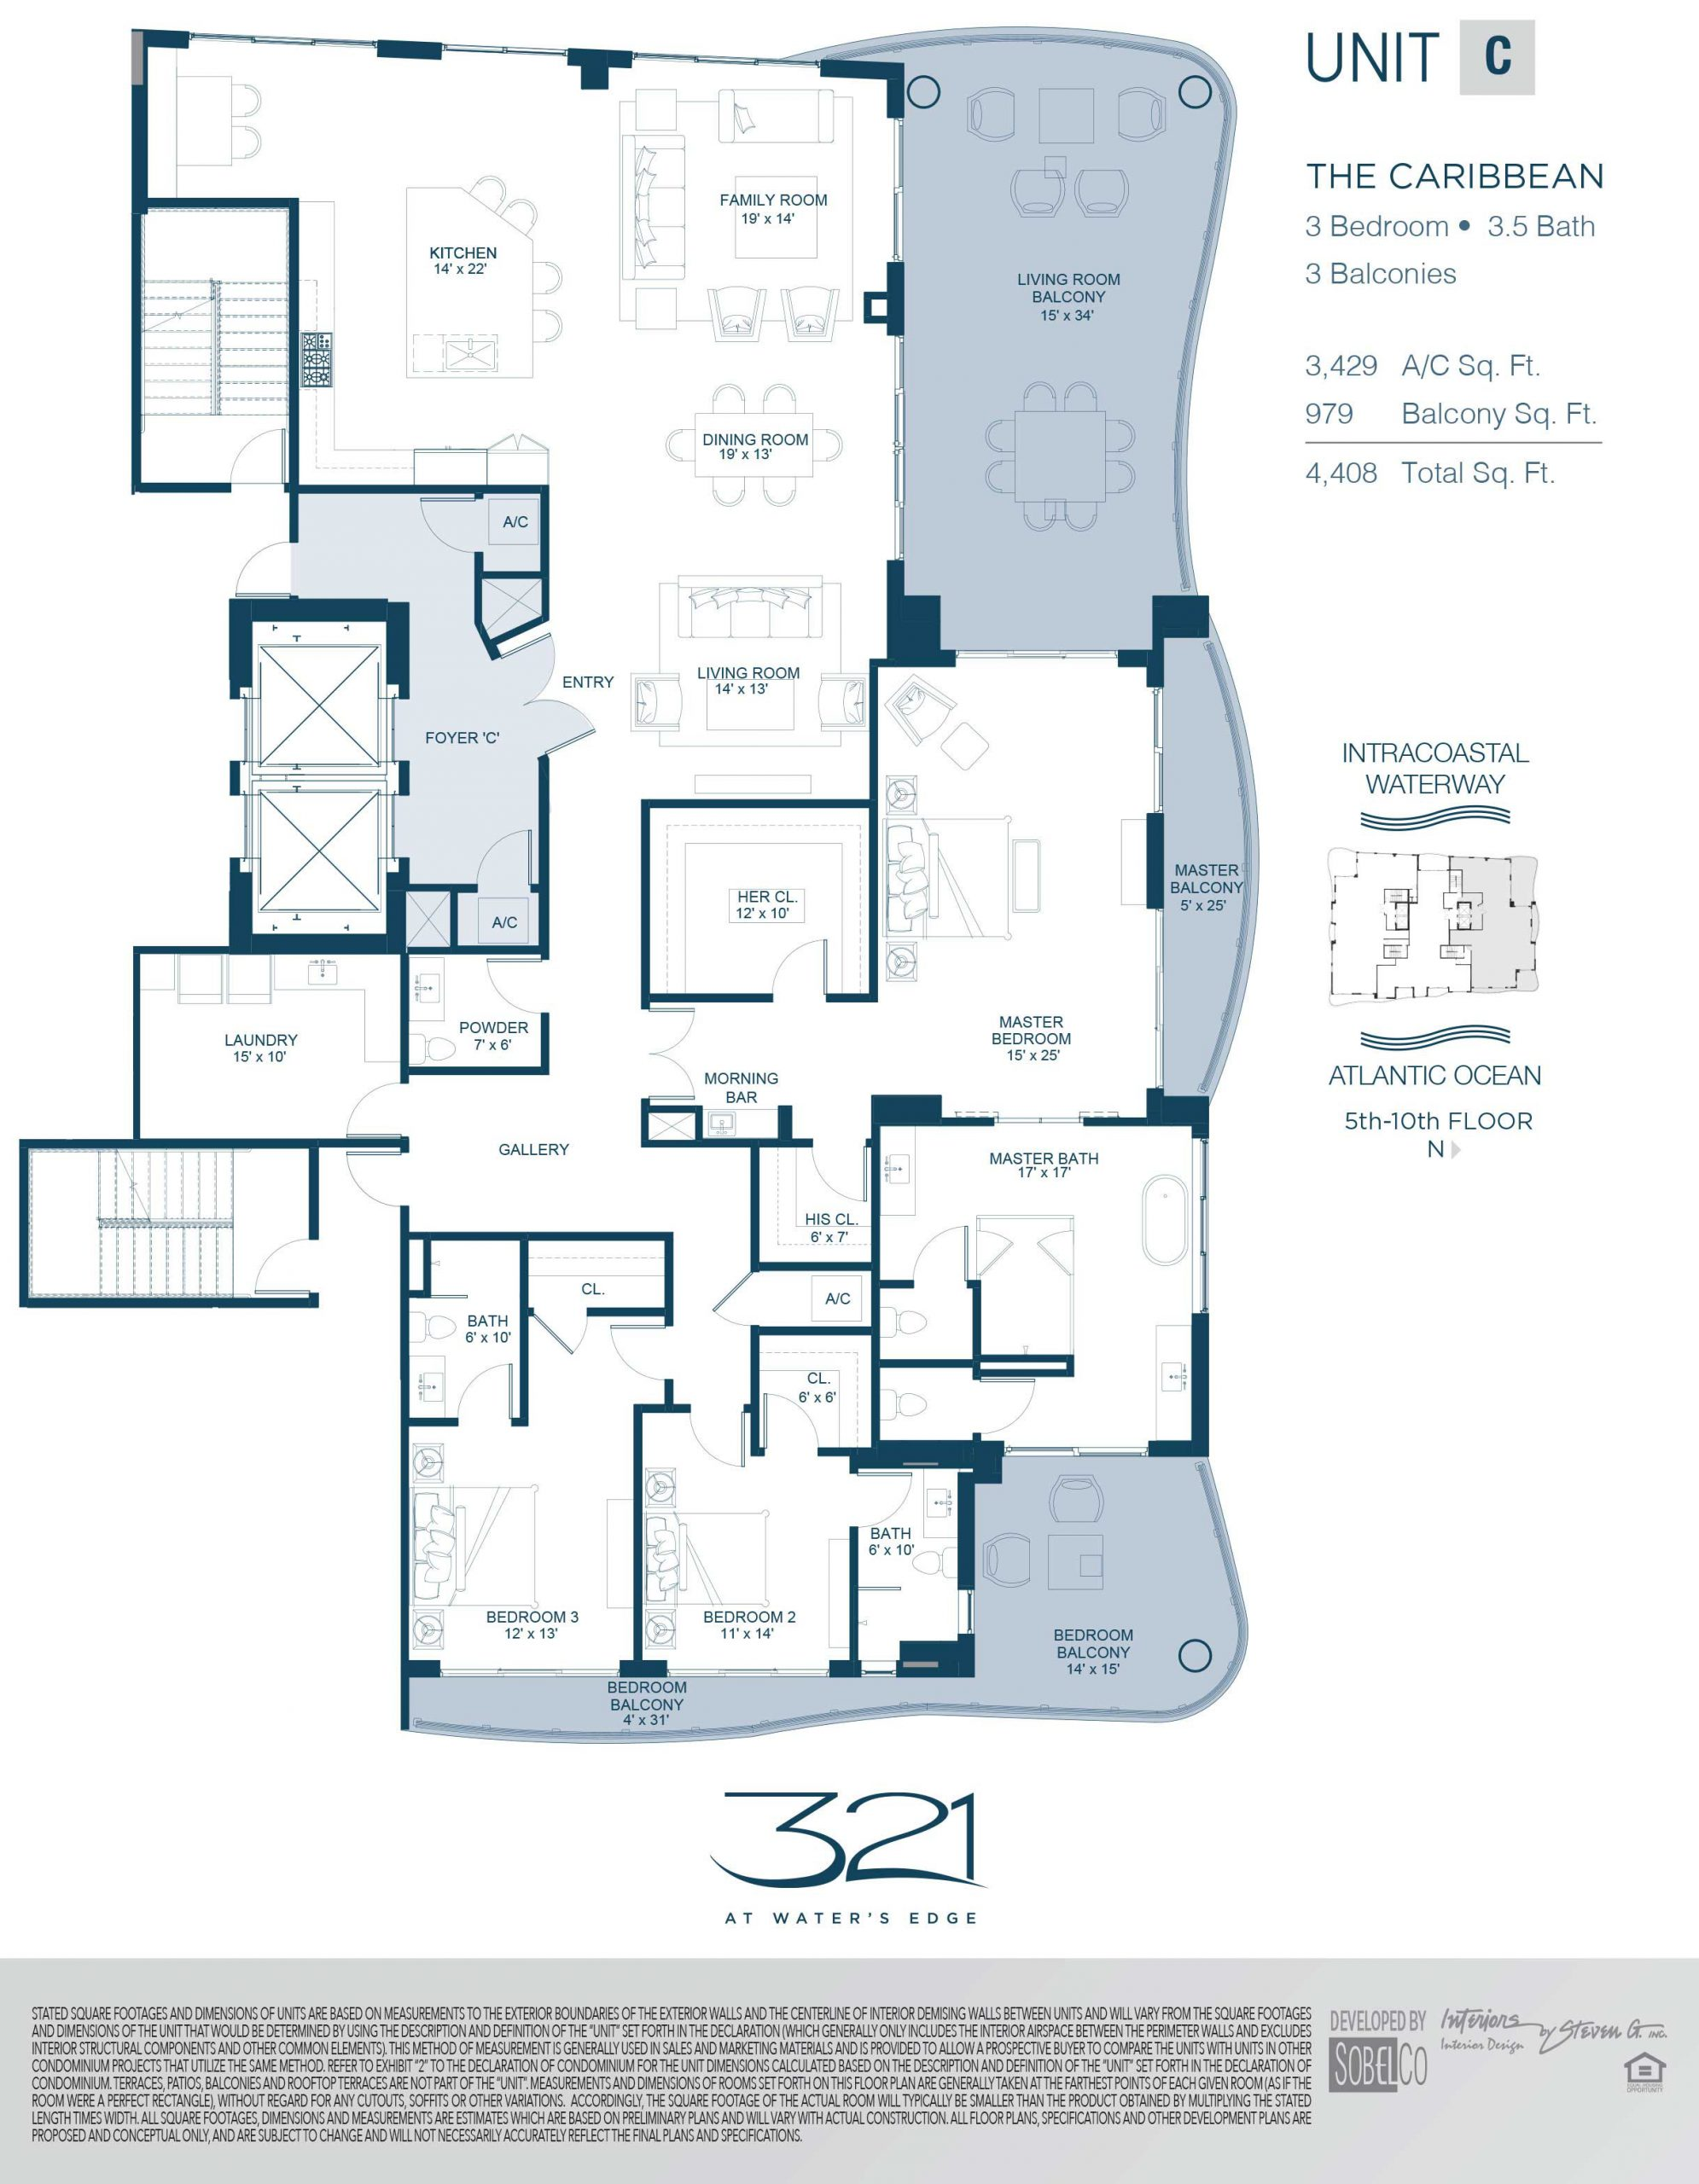 321 At Waters Edge Floor Plans Unit C